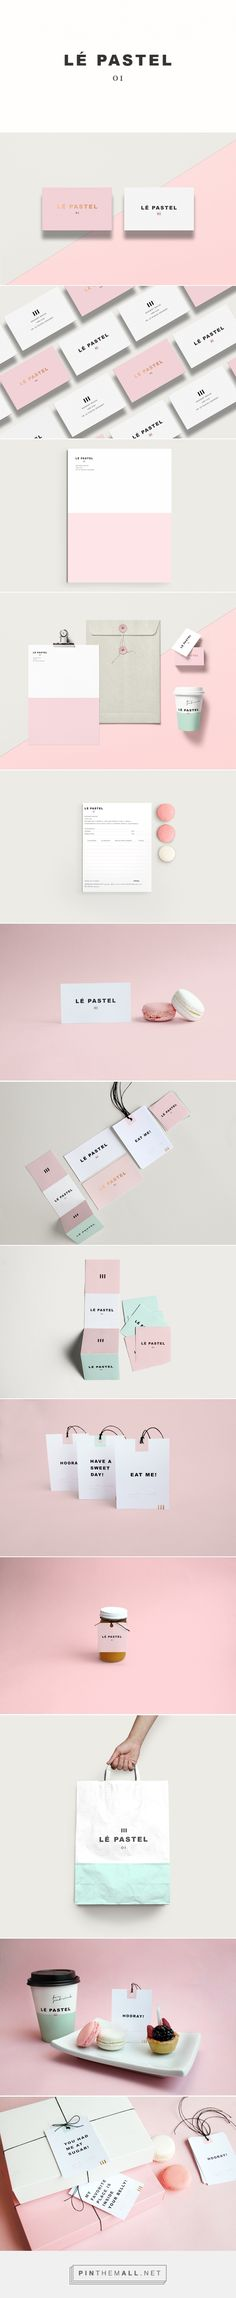 Lé Pastel Pastry Shop Branding by Claudia Argueta | Fivestar Branding Agency – Design and Branding Agency & Curated Inspiration Gallery